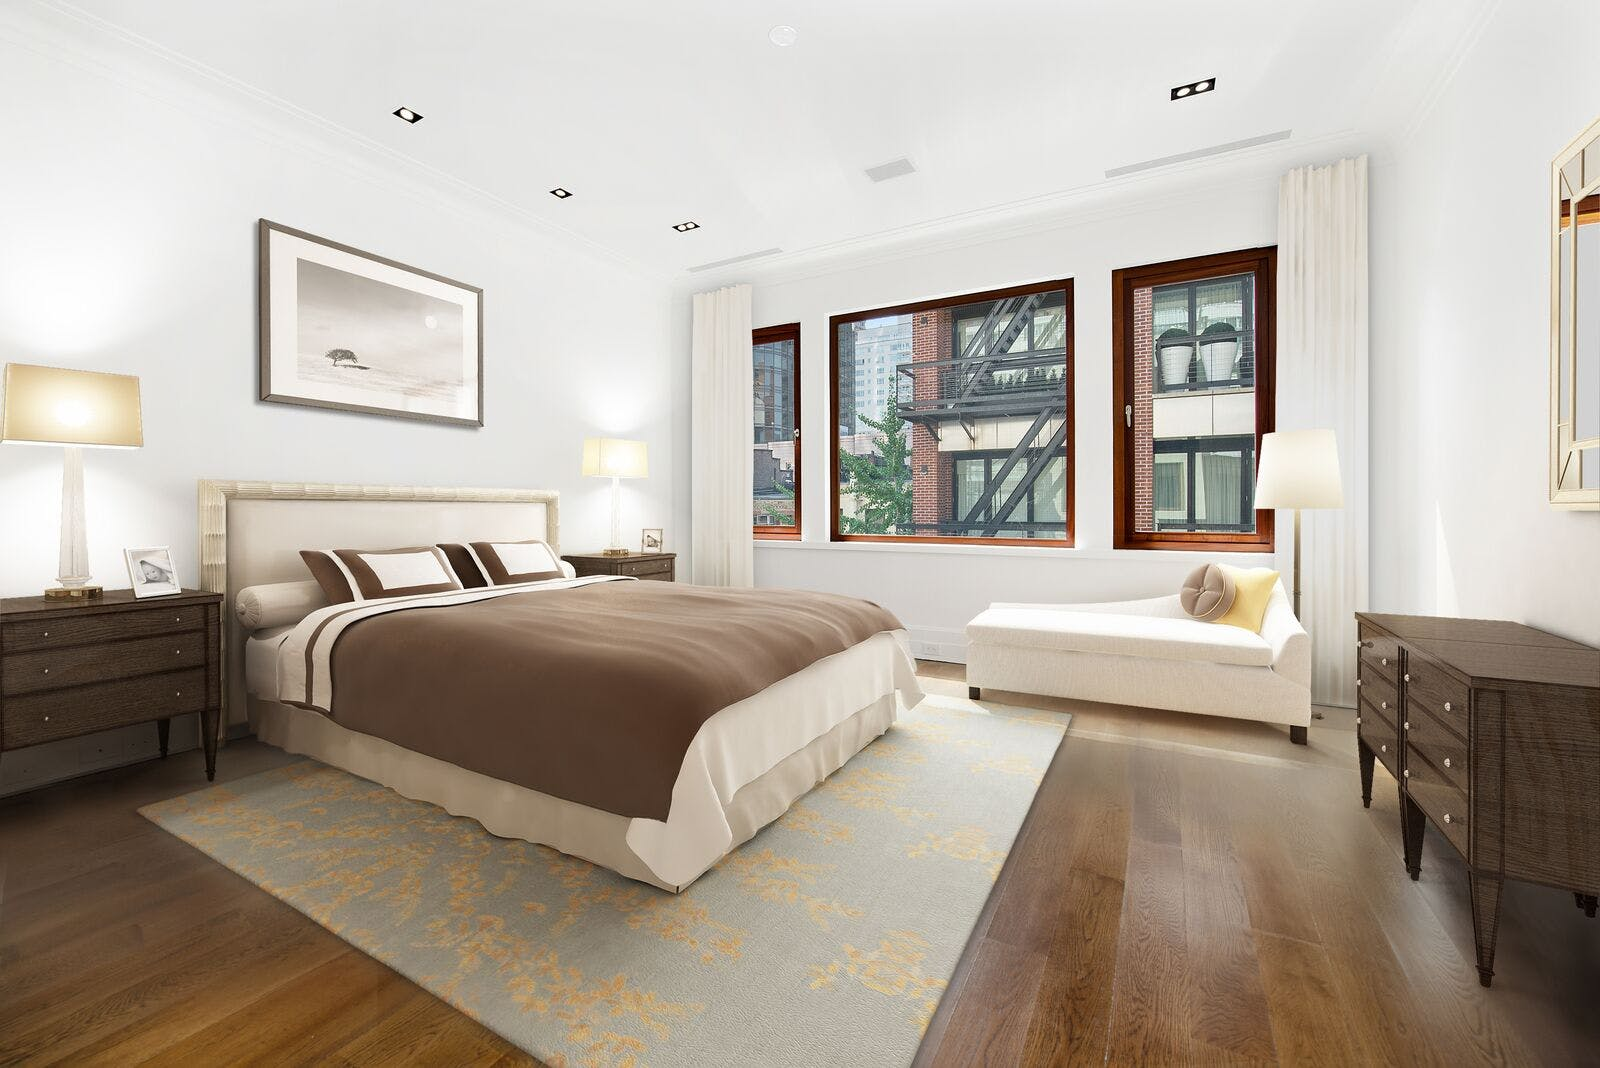 238 East 68th Street  - 43a88703-21d9-4d31-8b43-5bc860f07760 - New York City Townhouse Real Estate